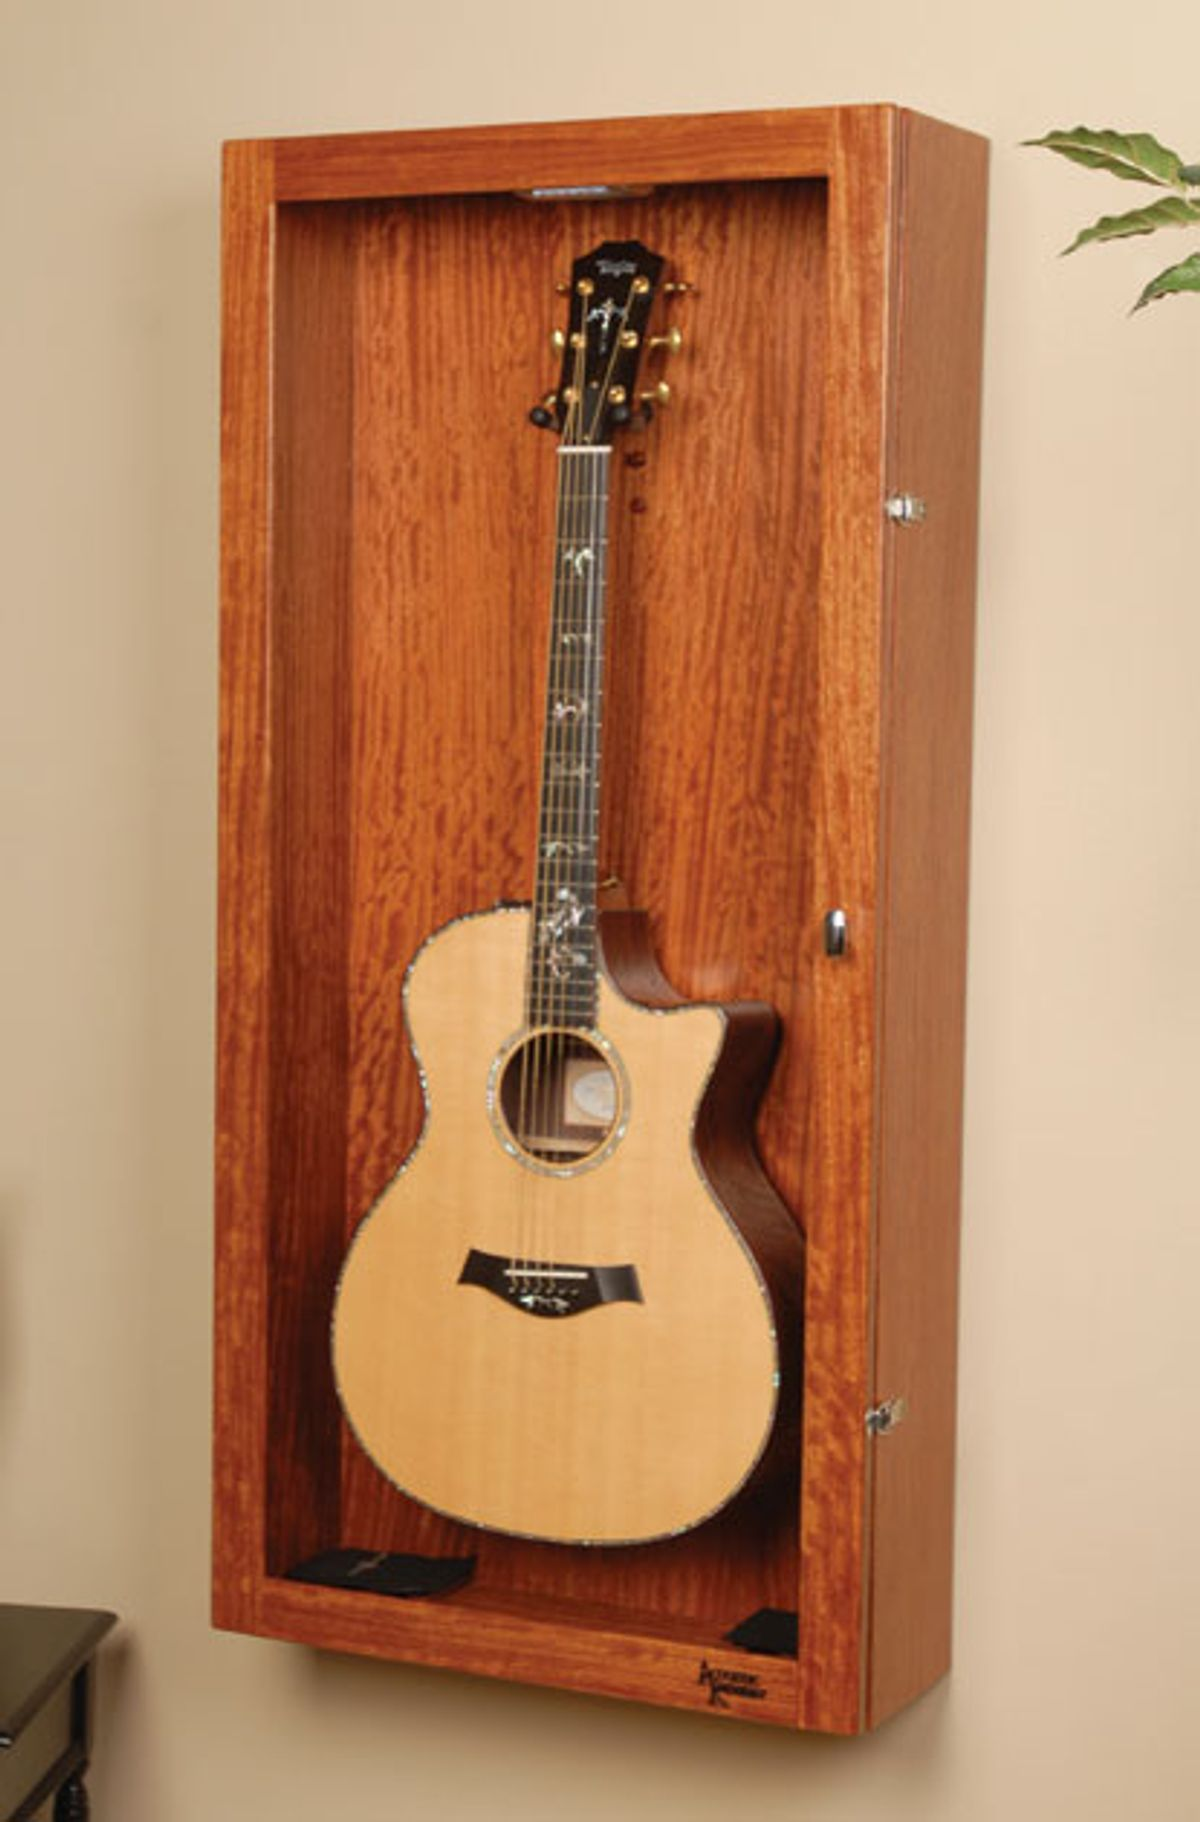 Acoustic Soundboard: Appreciating the Beauty of Underused Guitars